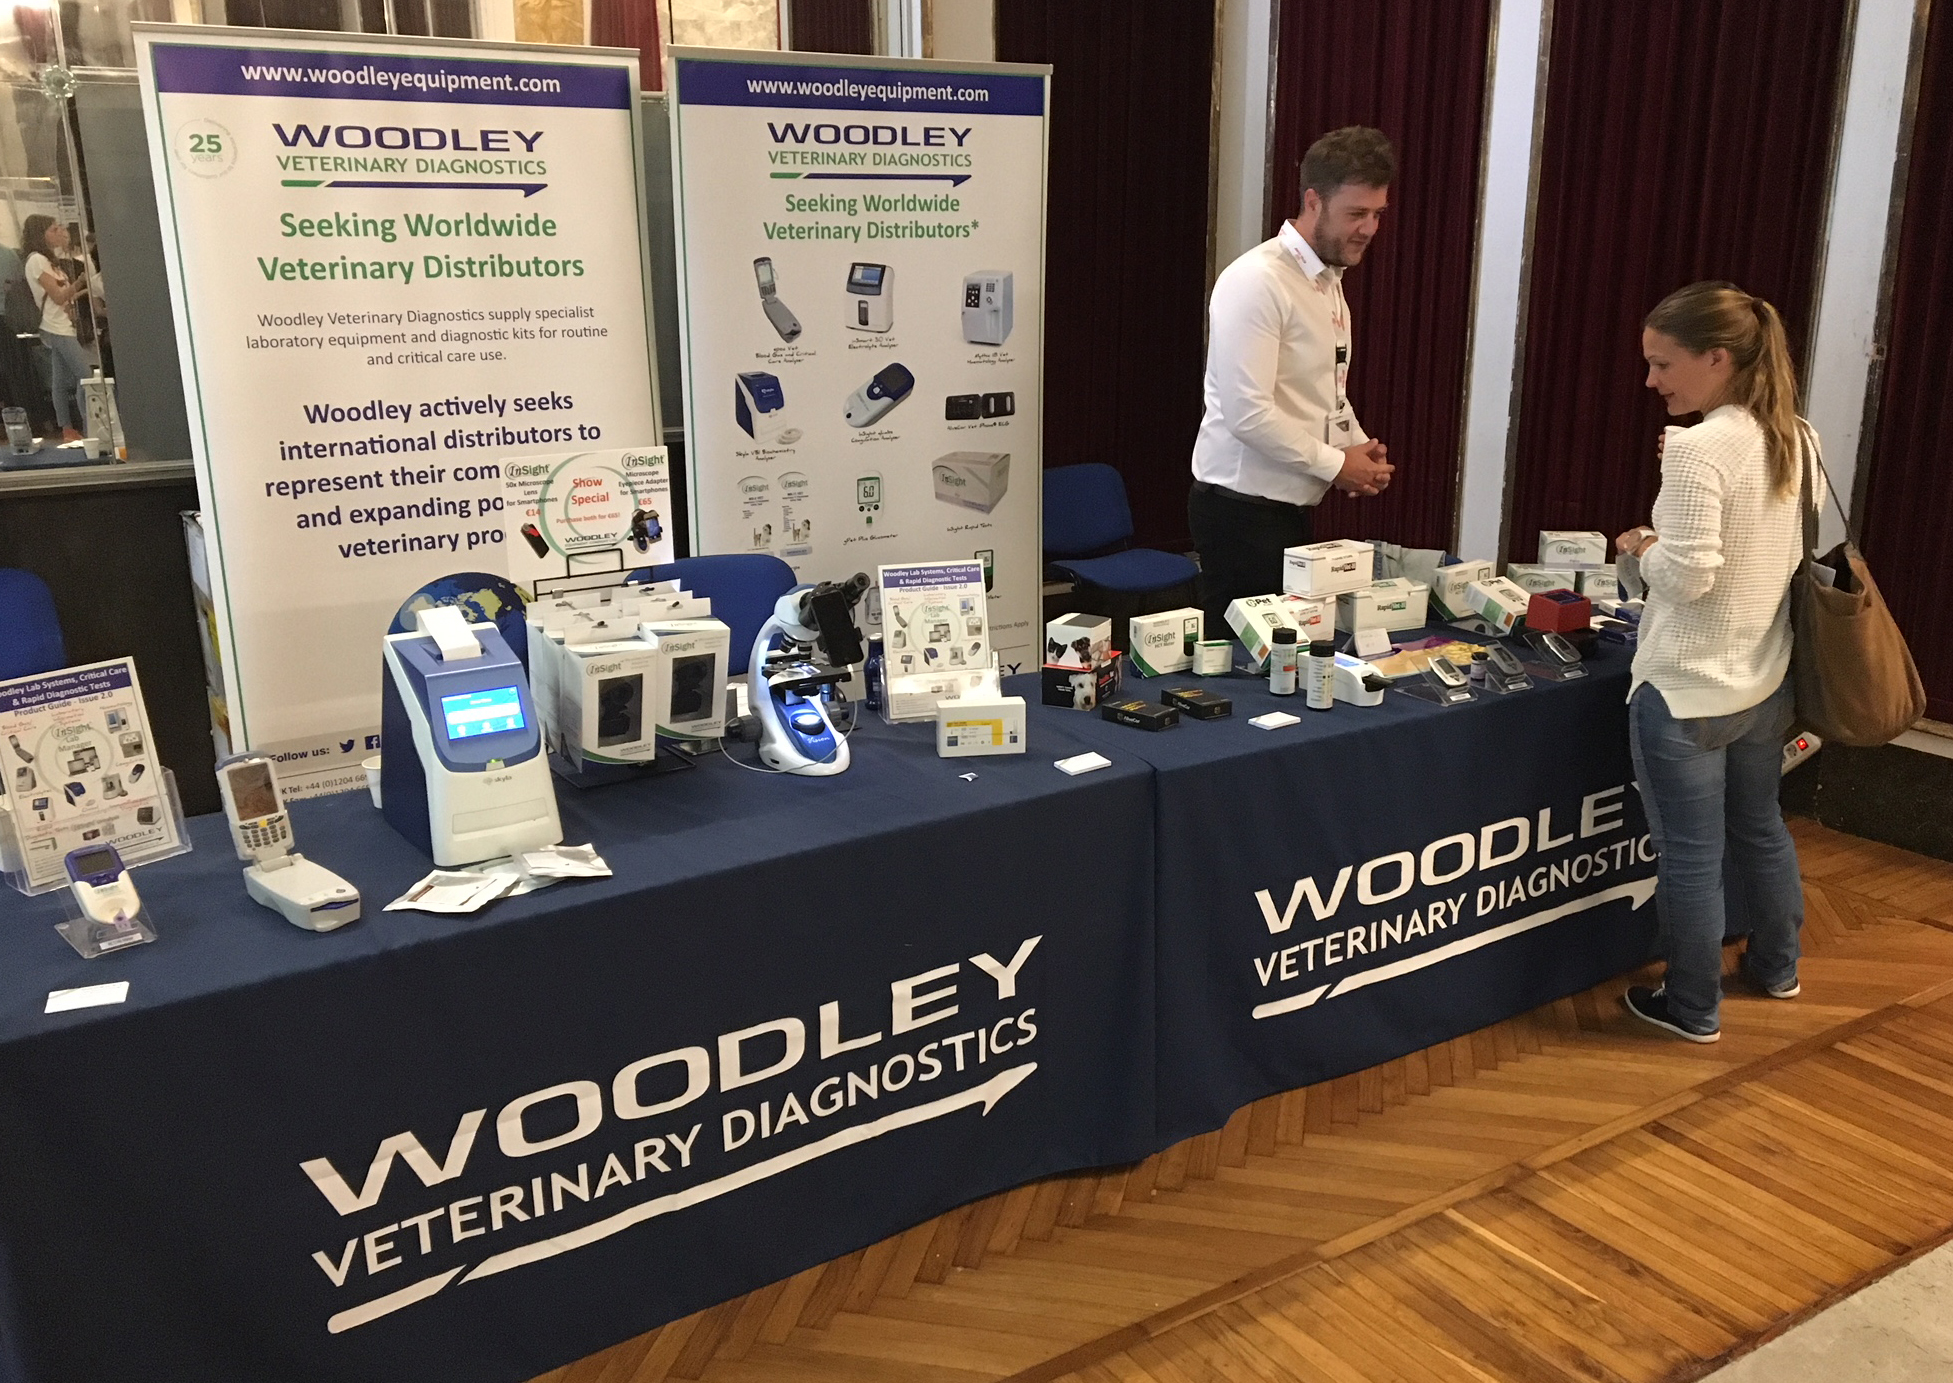 Woodley Are Proud to be Silver Sponsors of the 2018 EVECC Conference in Venice